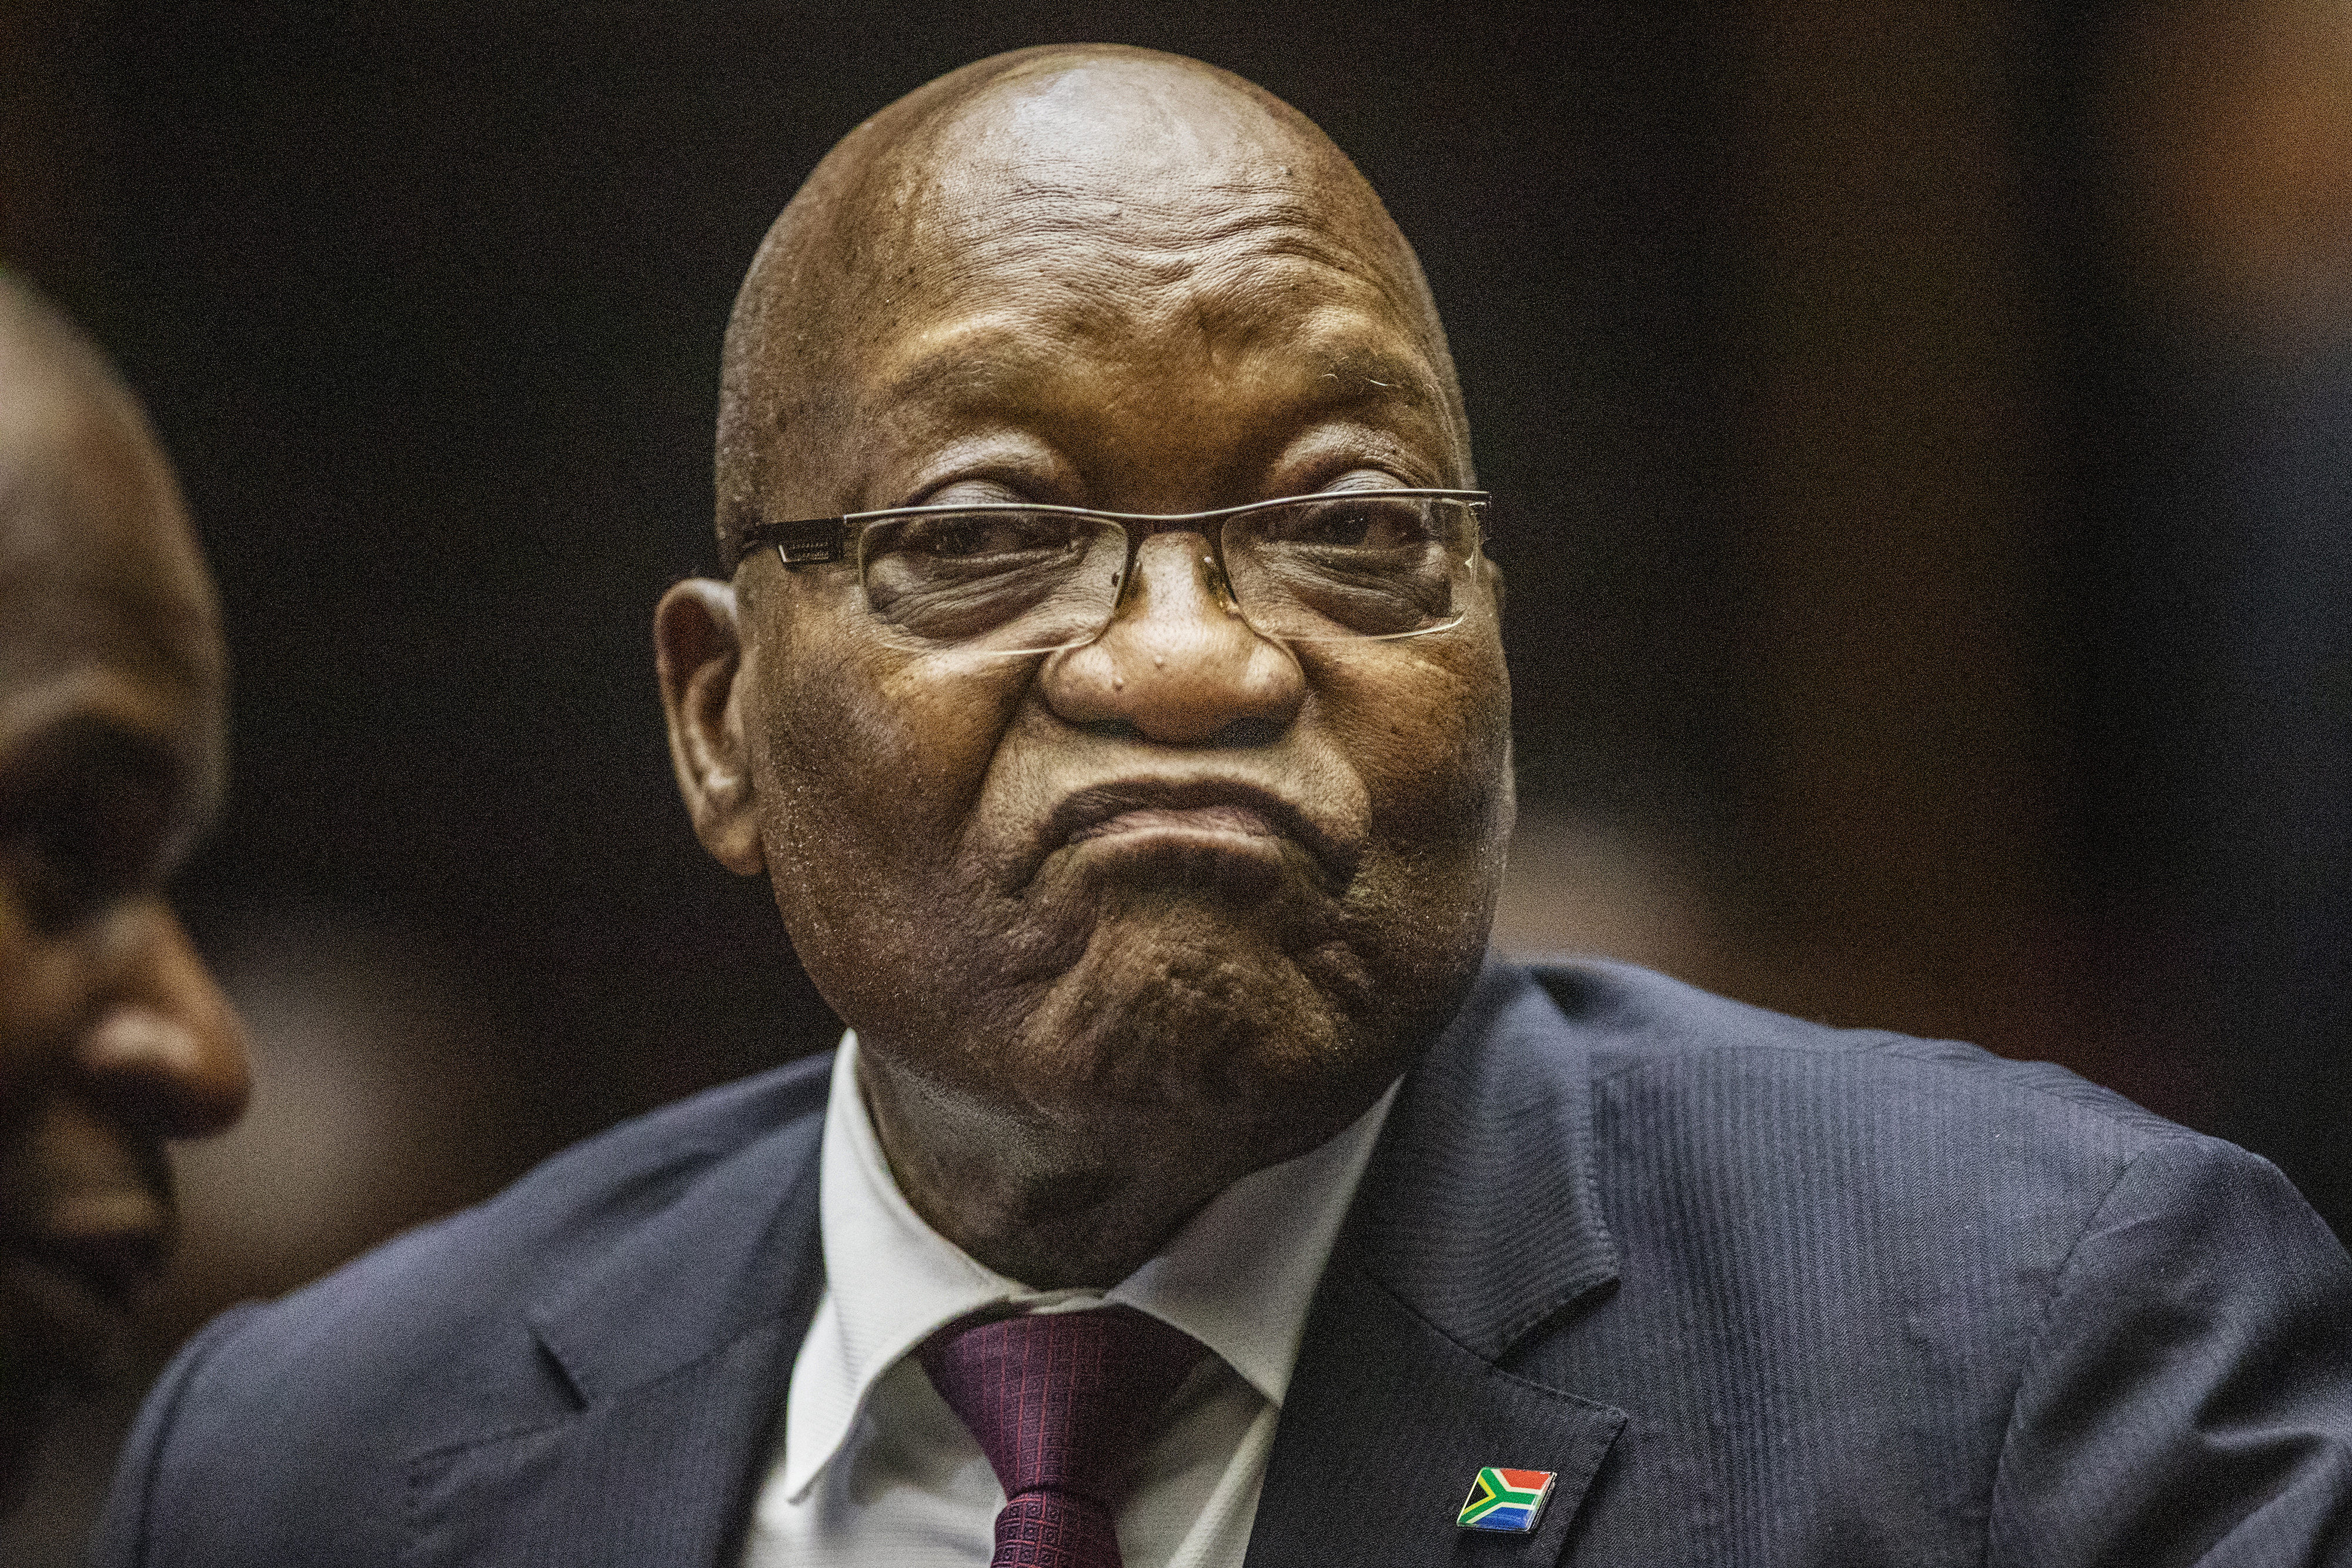 South African court issues arrest warrant for ex-leader Zuma